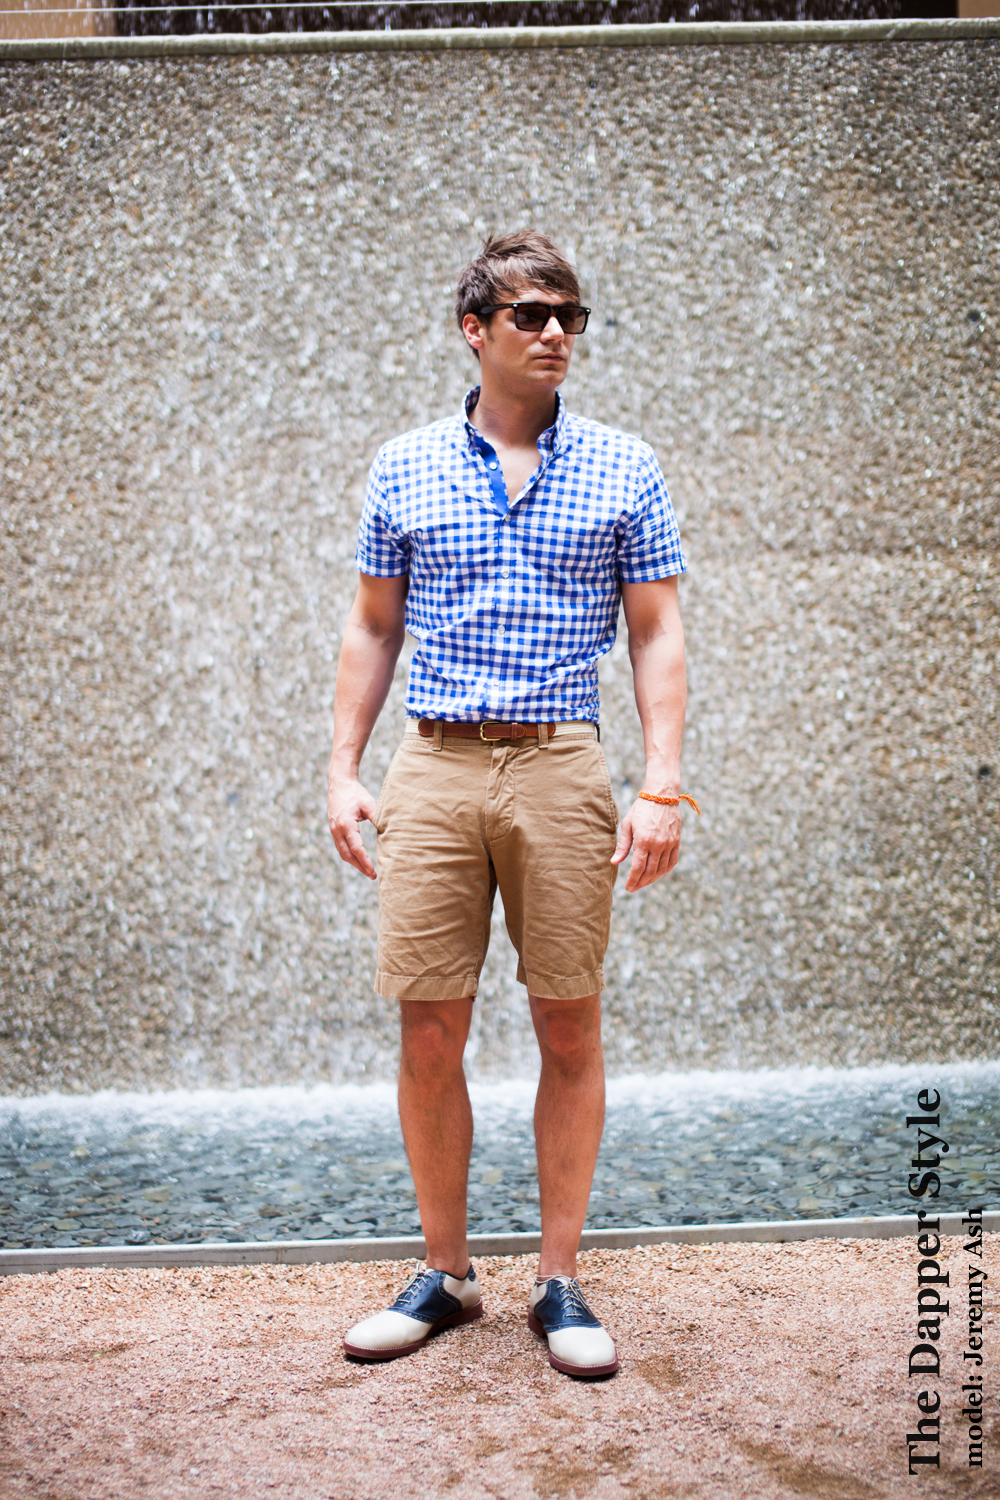 Casual Shoes For Men With Shorts